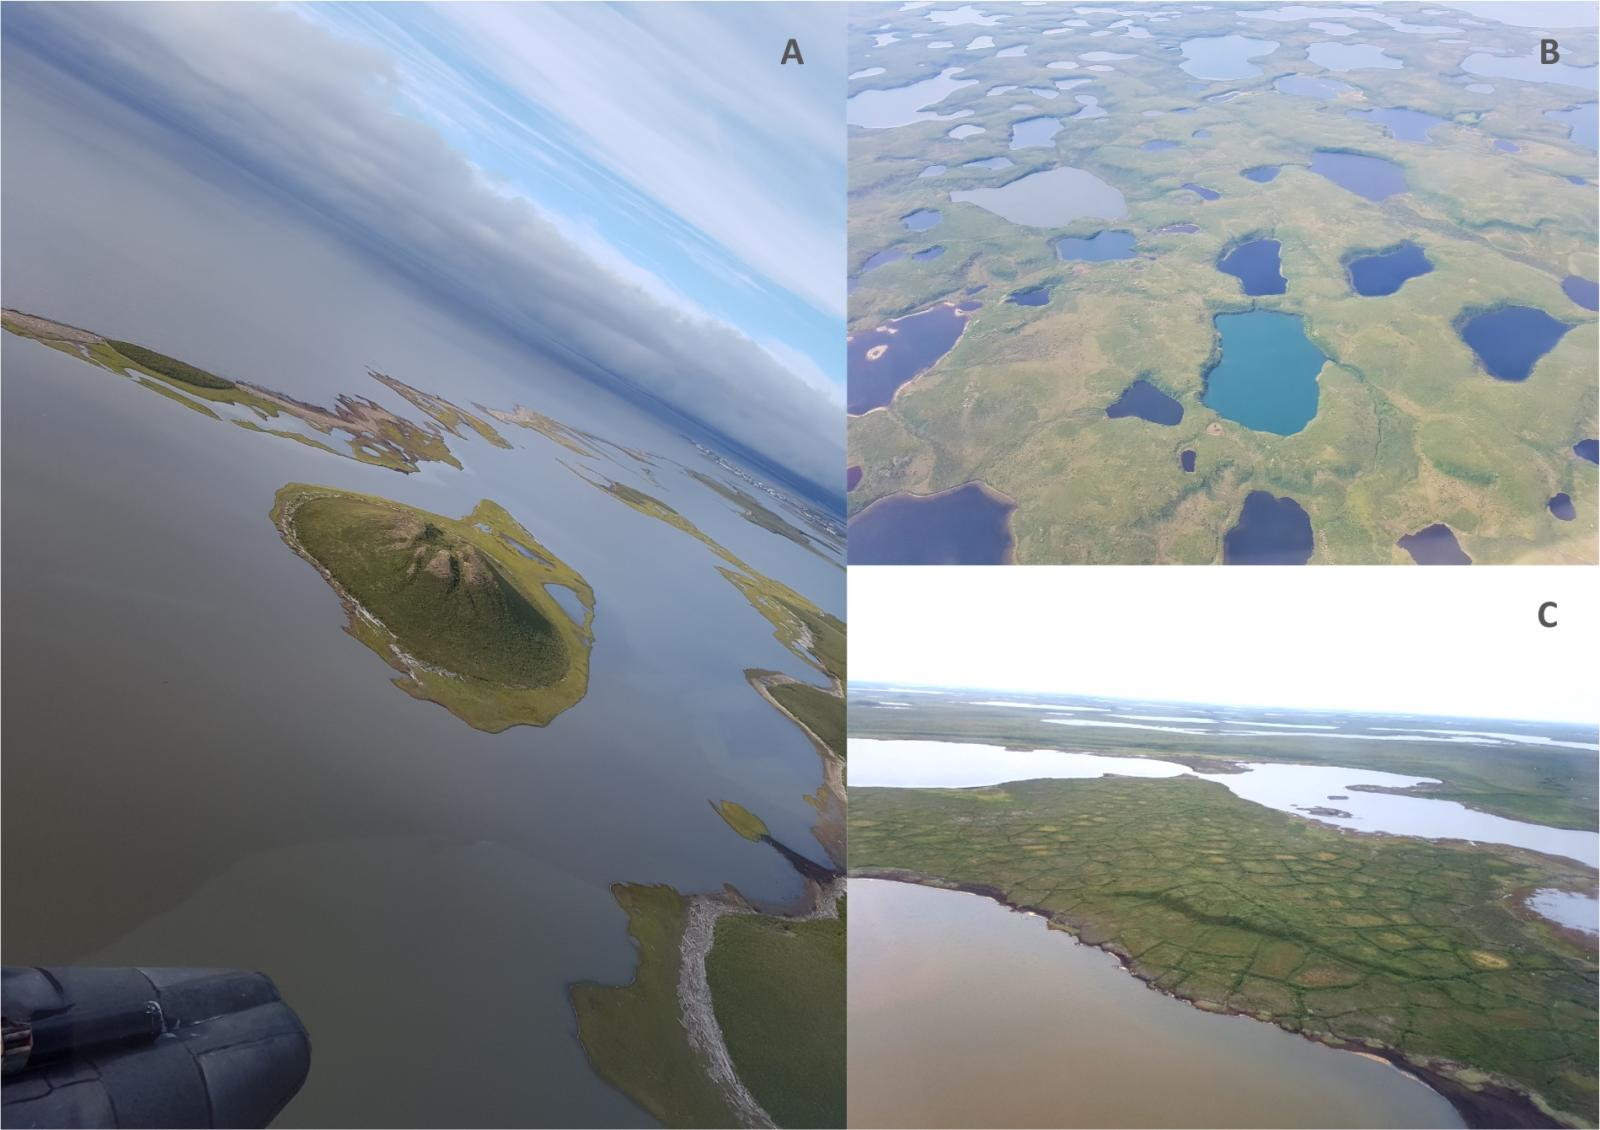 A Pingo near Tuktoyaktuk (A), colourful thermokarst lakes (B) and ice-wedge polygons or patterned ground (C)